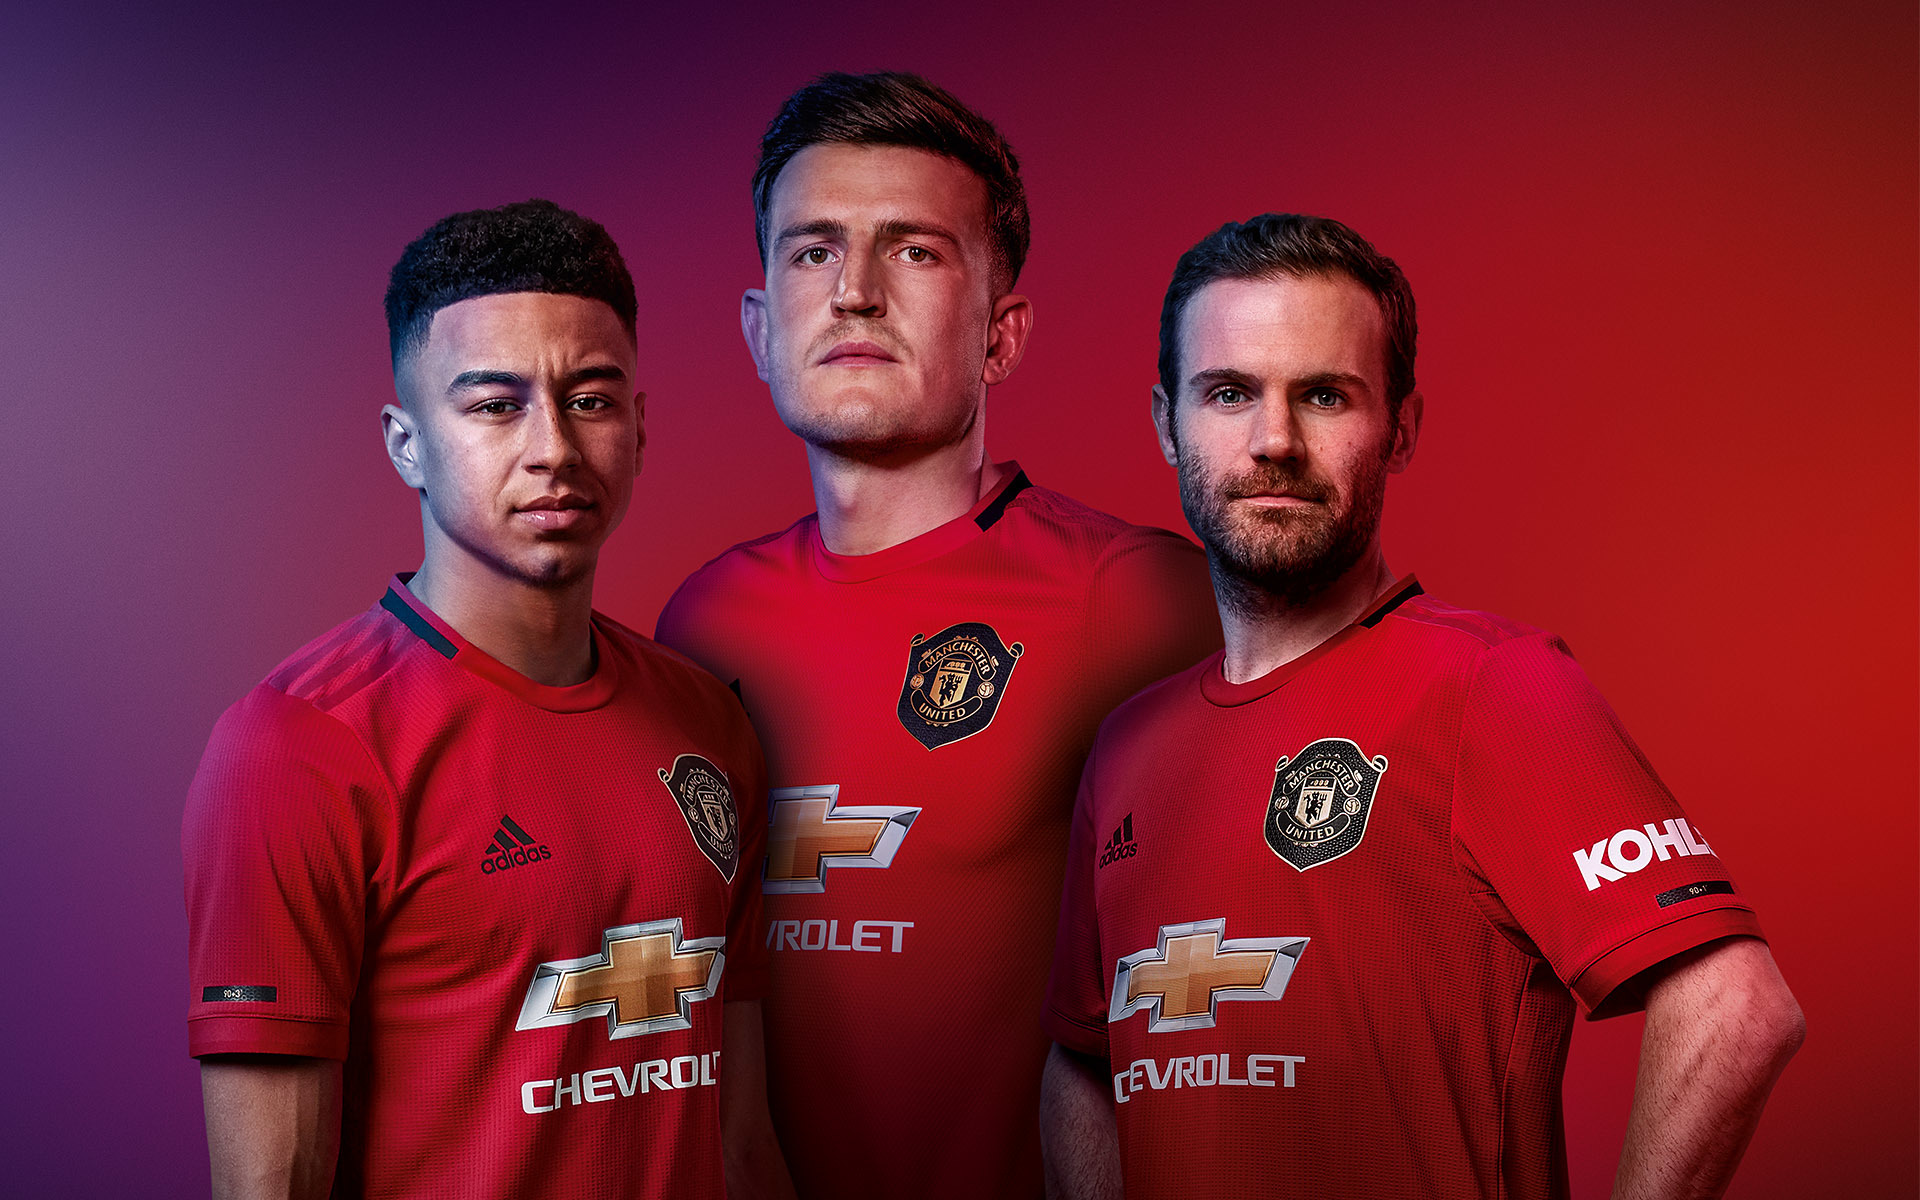 CHIVAS REGAL campaign with Manchester United. Jesse Lingard,Harry Maguire & Juan Mata